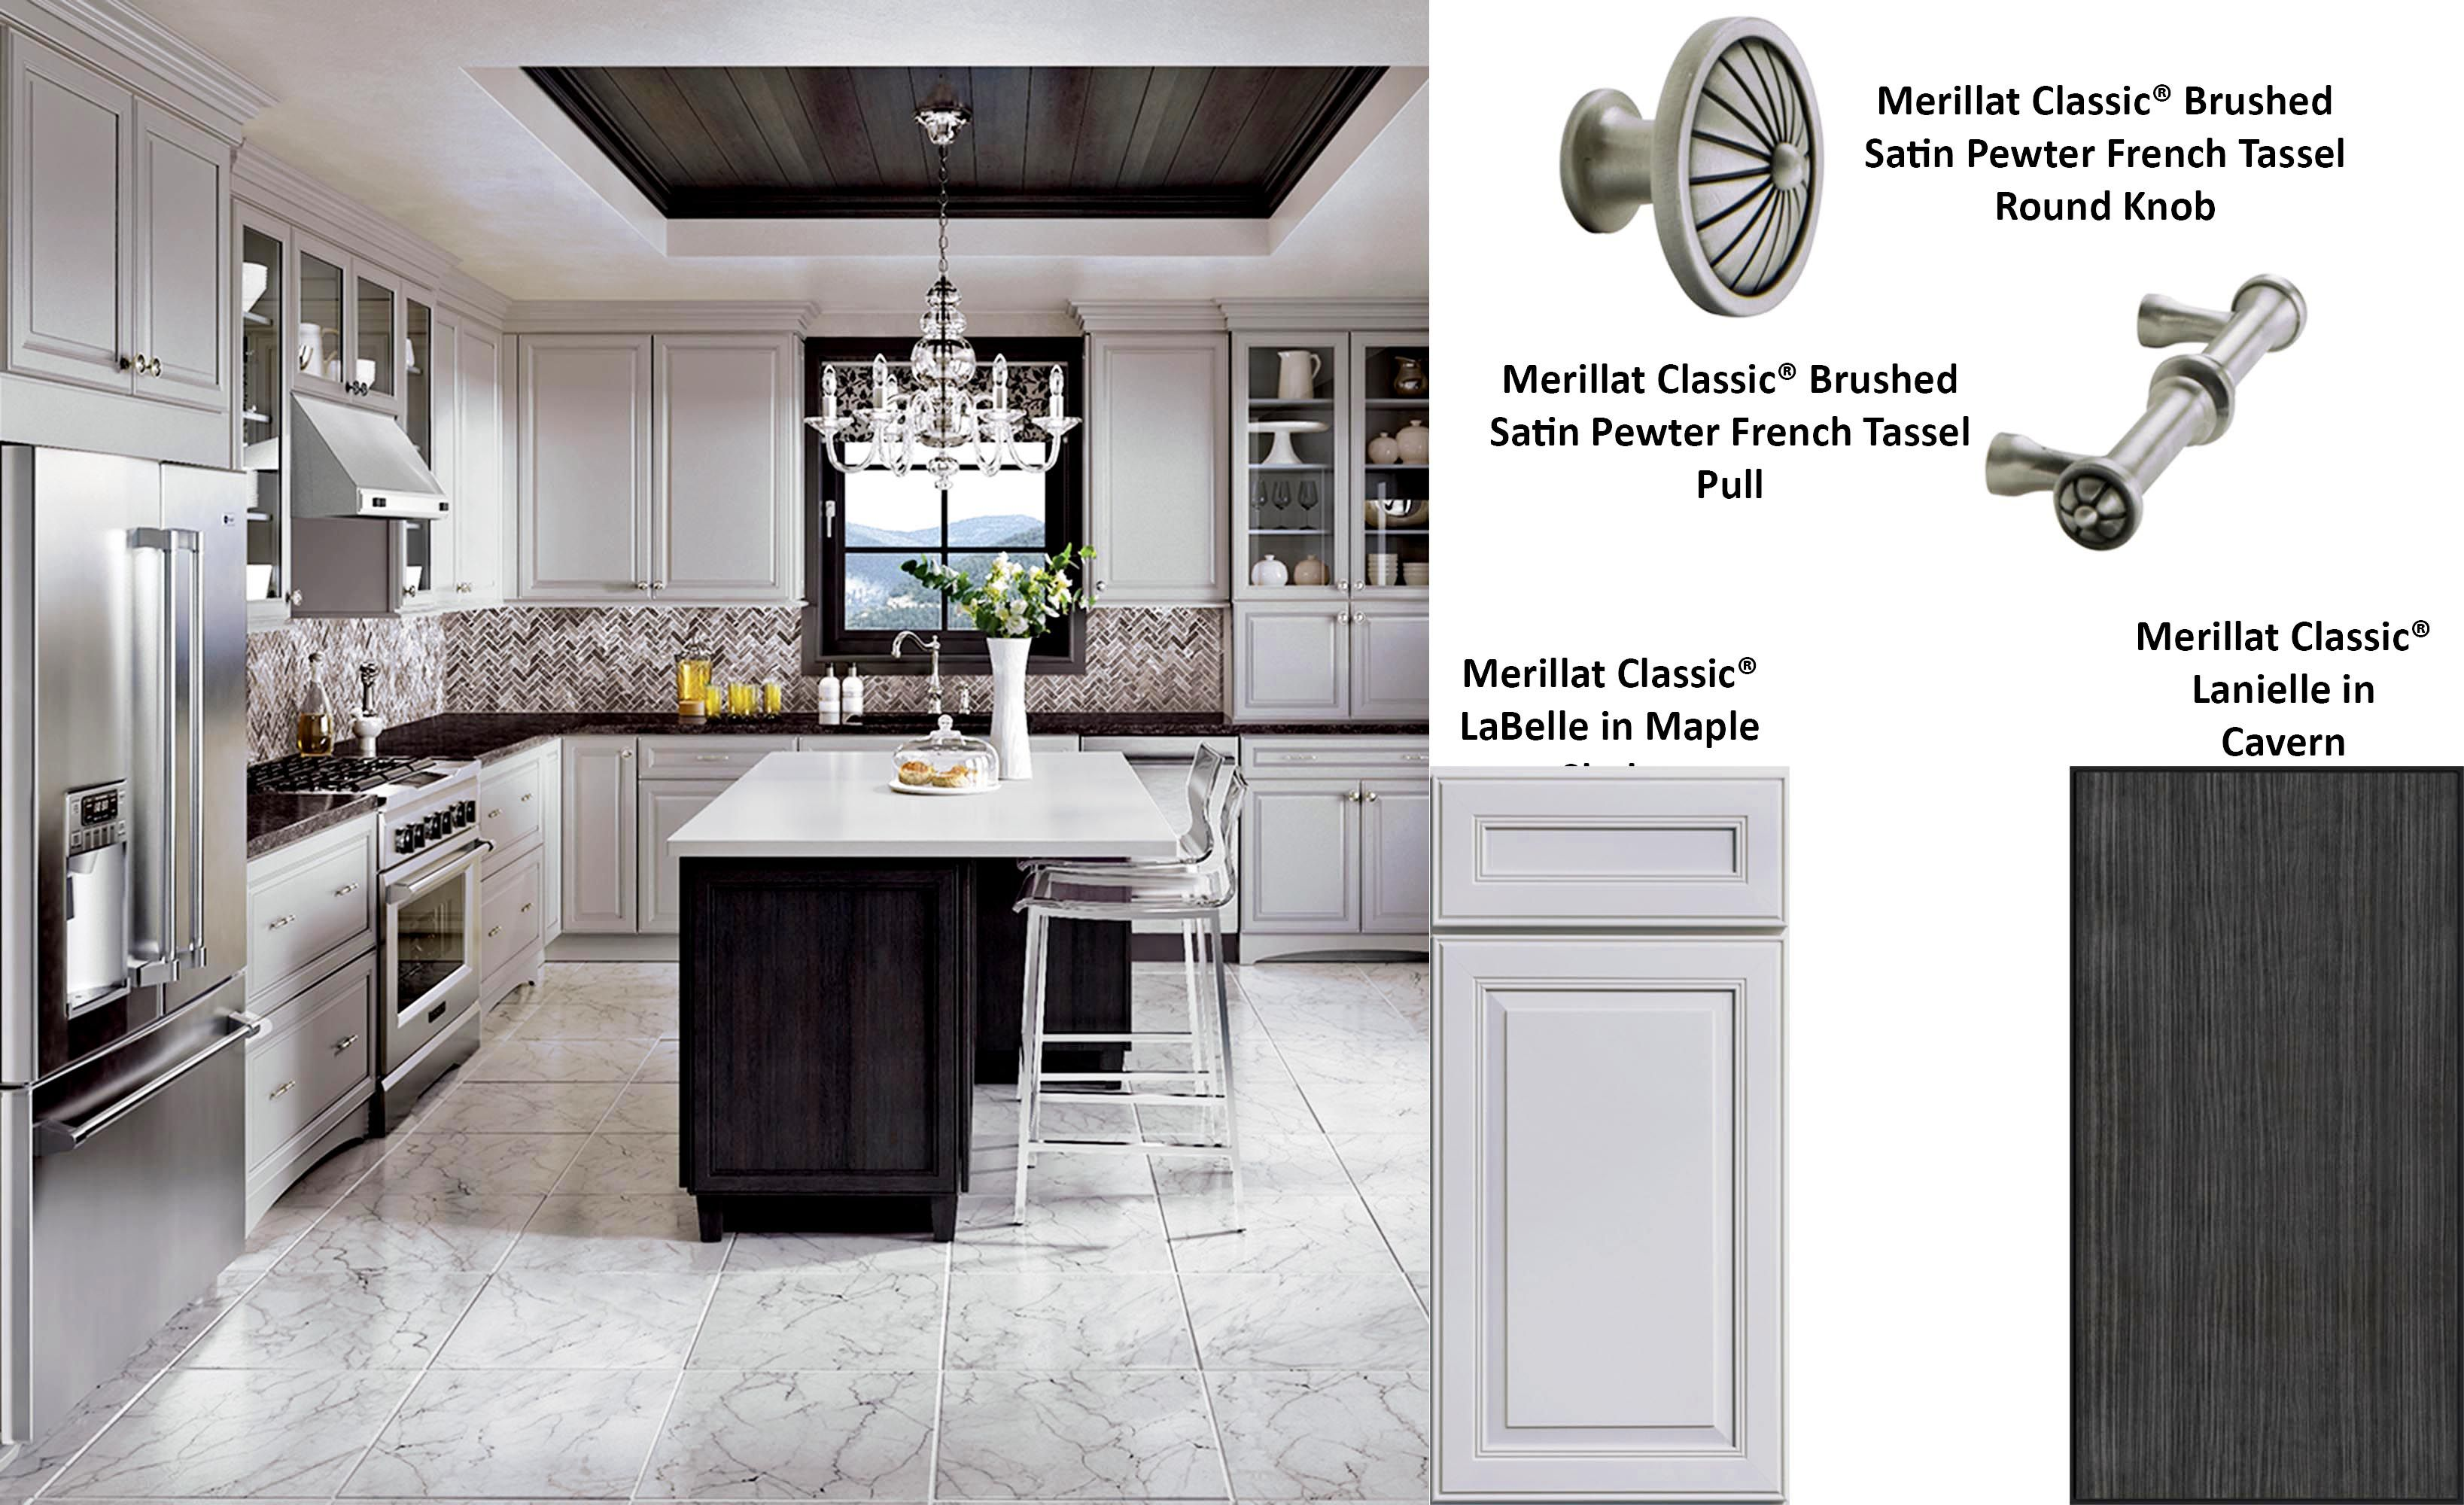 Merillat Classic Labelle In Maple Shale Grey Kitchen Designs Kitchen Cabinets Parts Merillat Cabinets